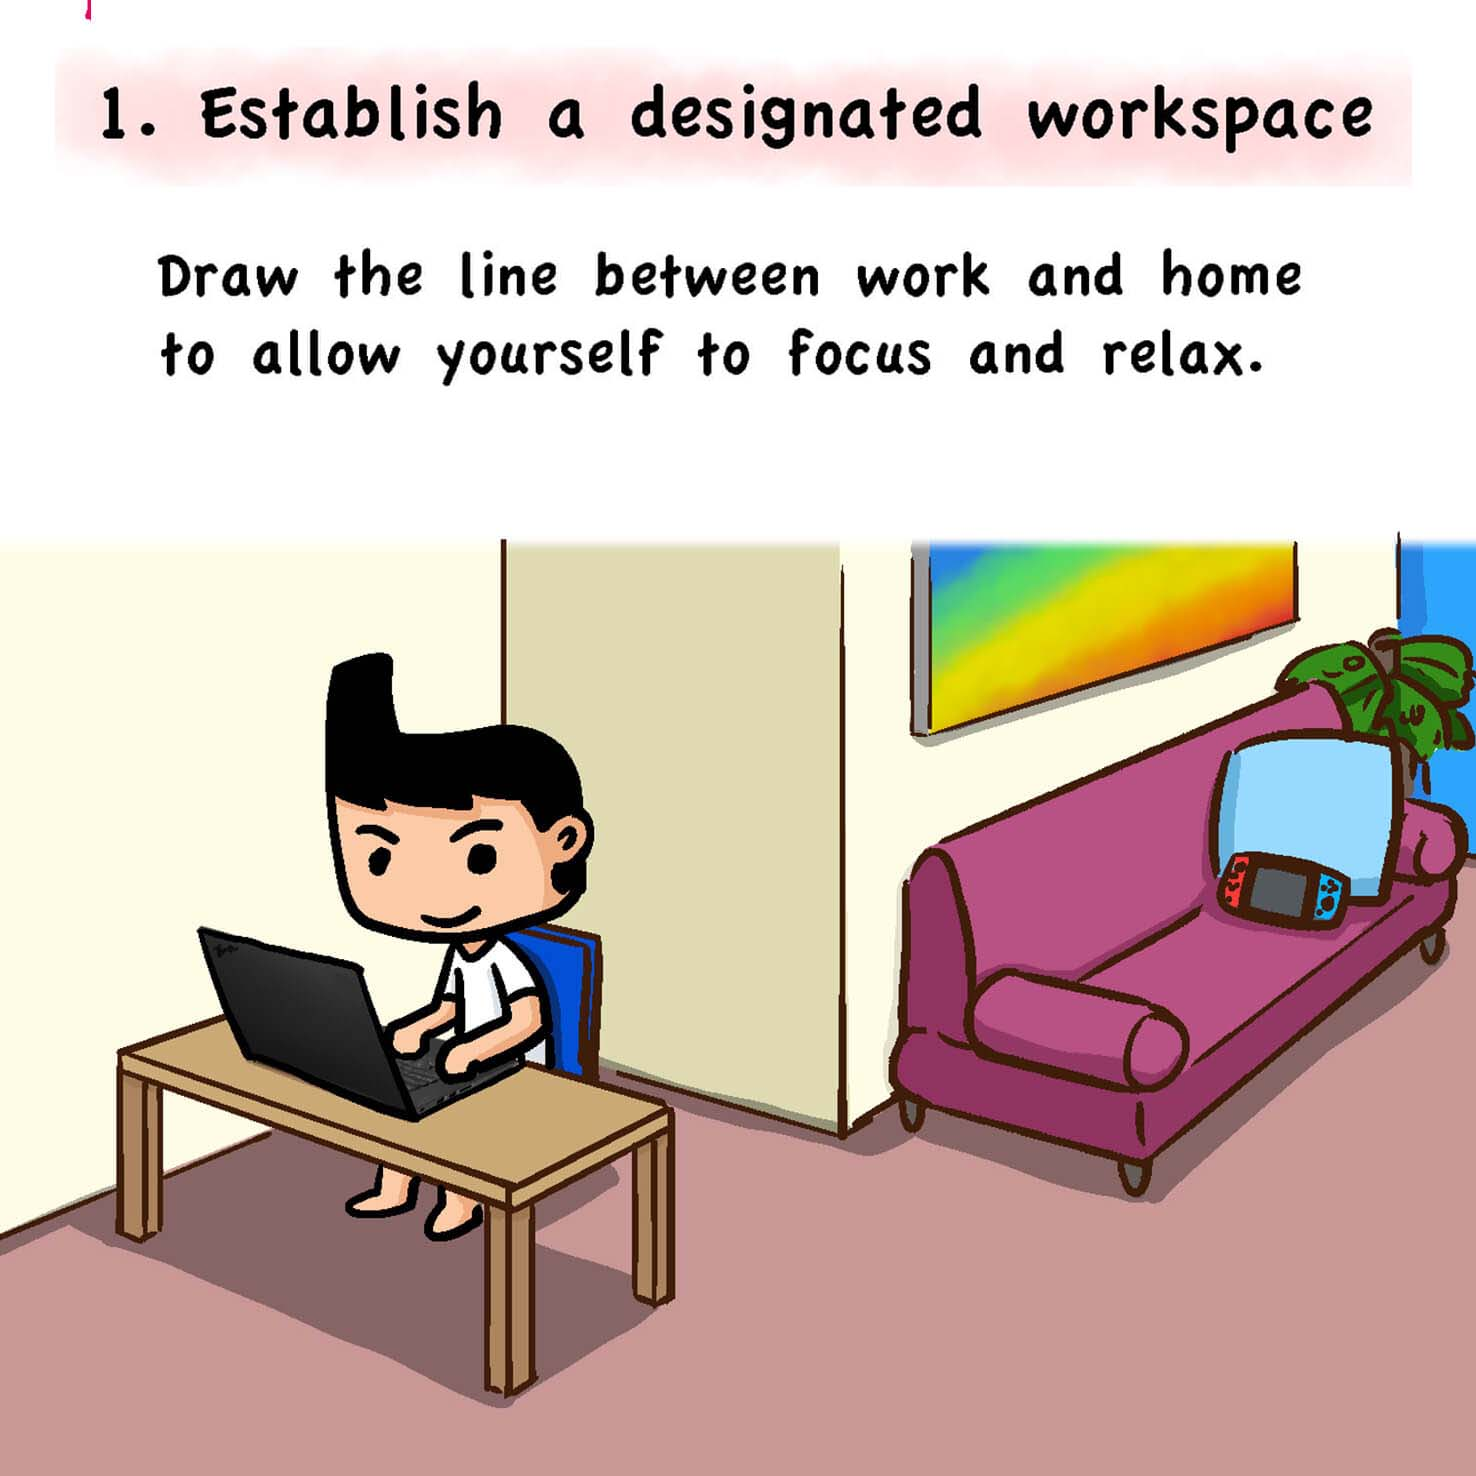 Comic Strip 1 Work From Home